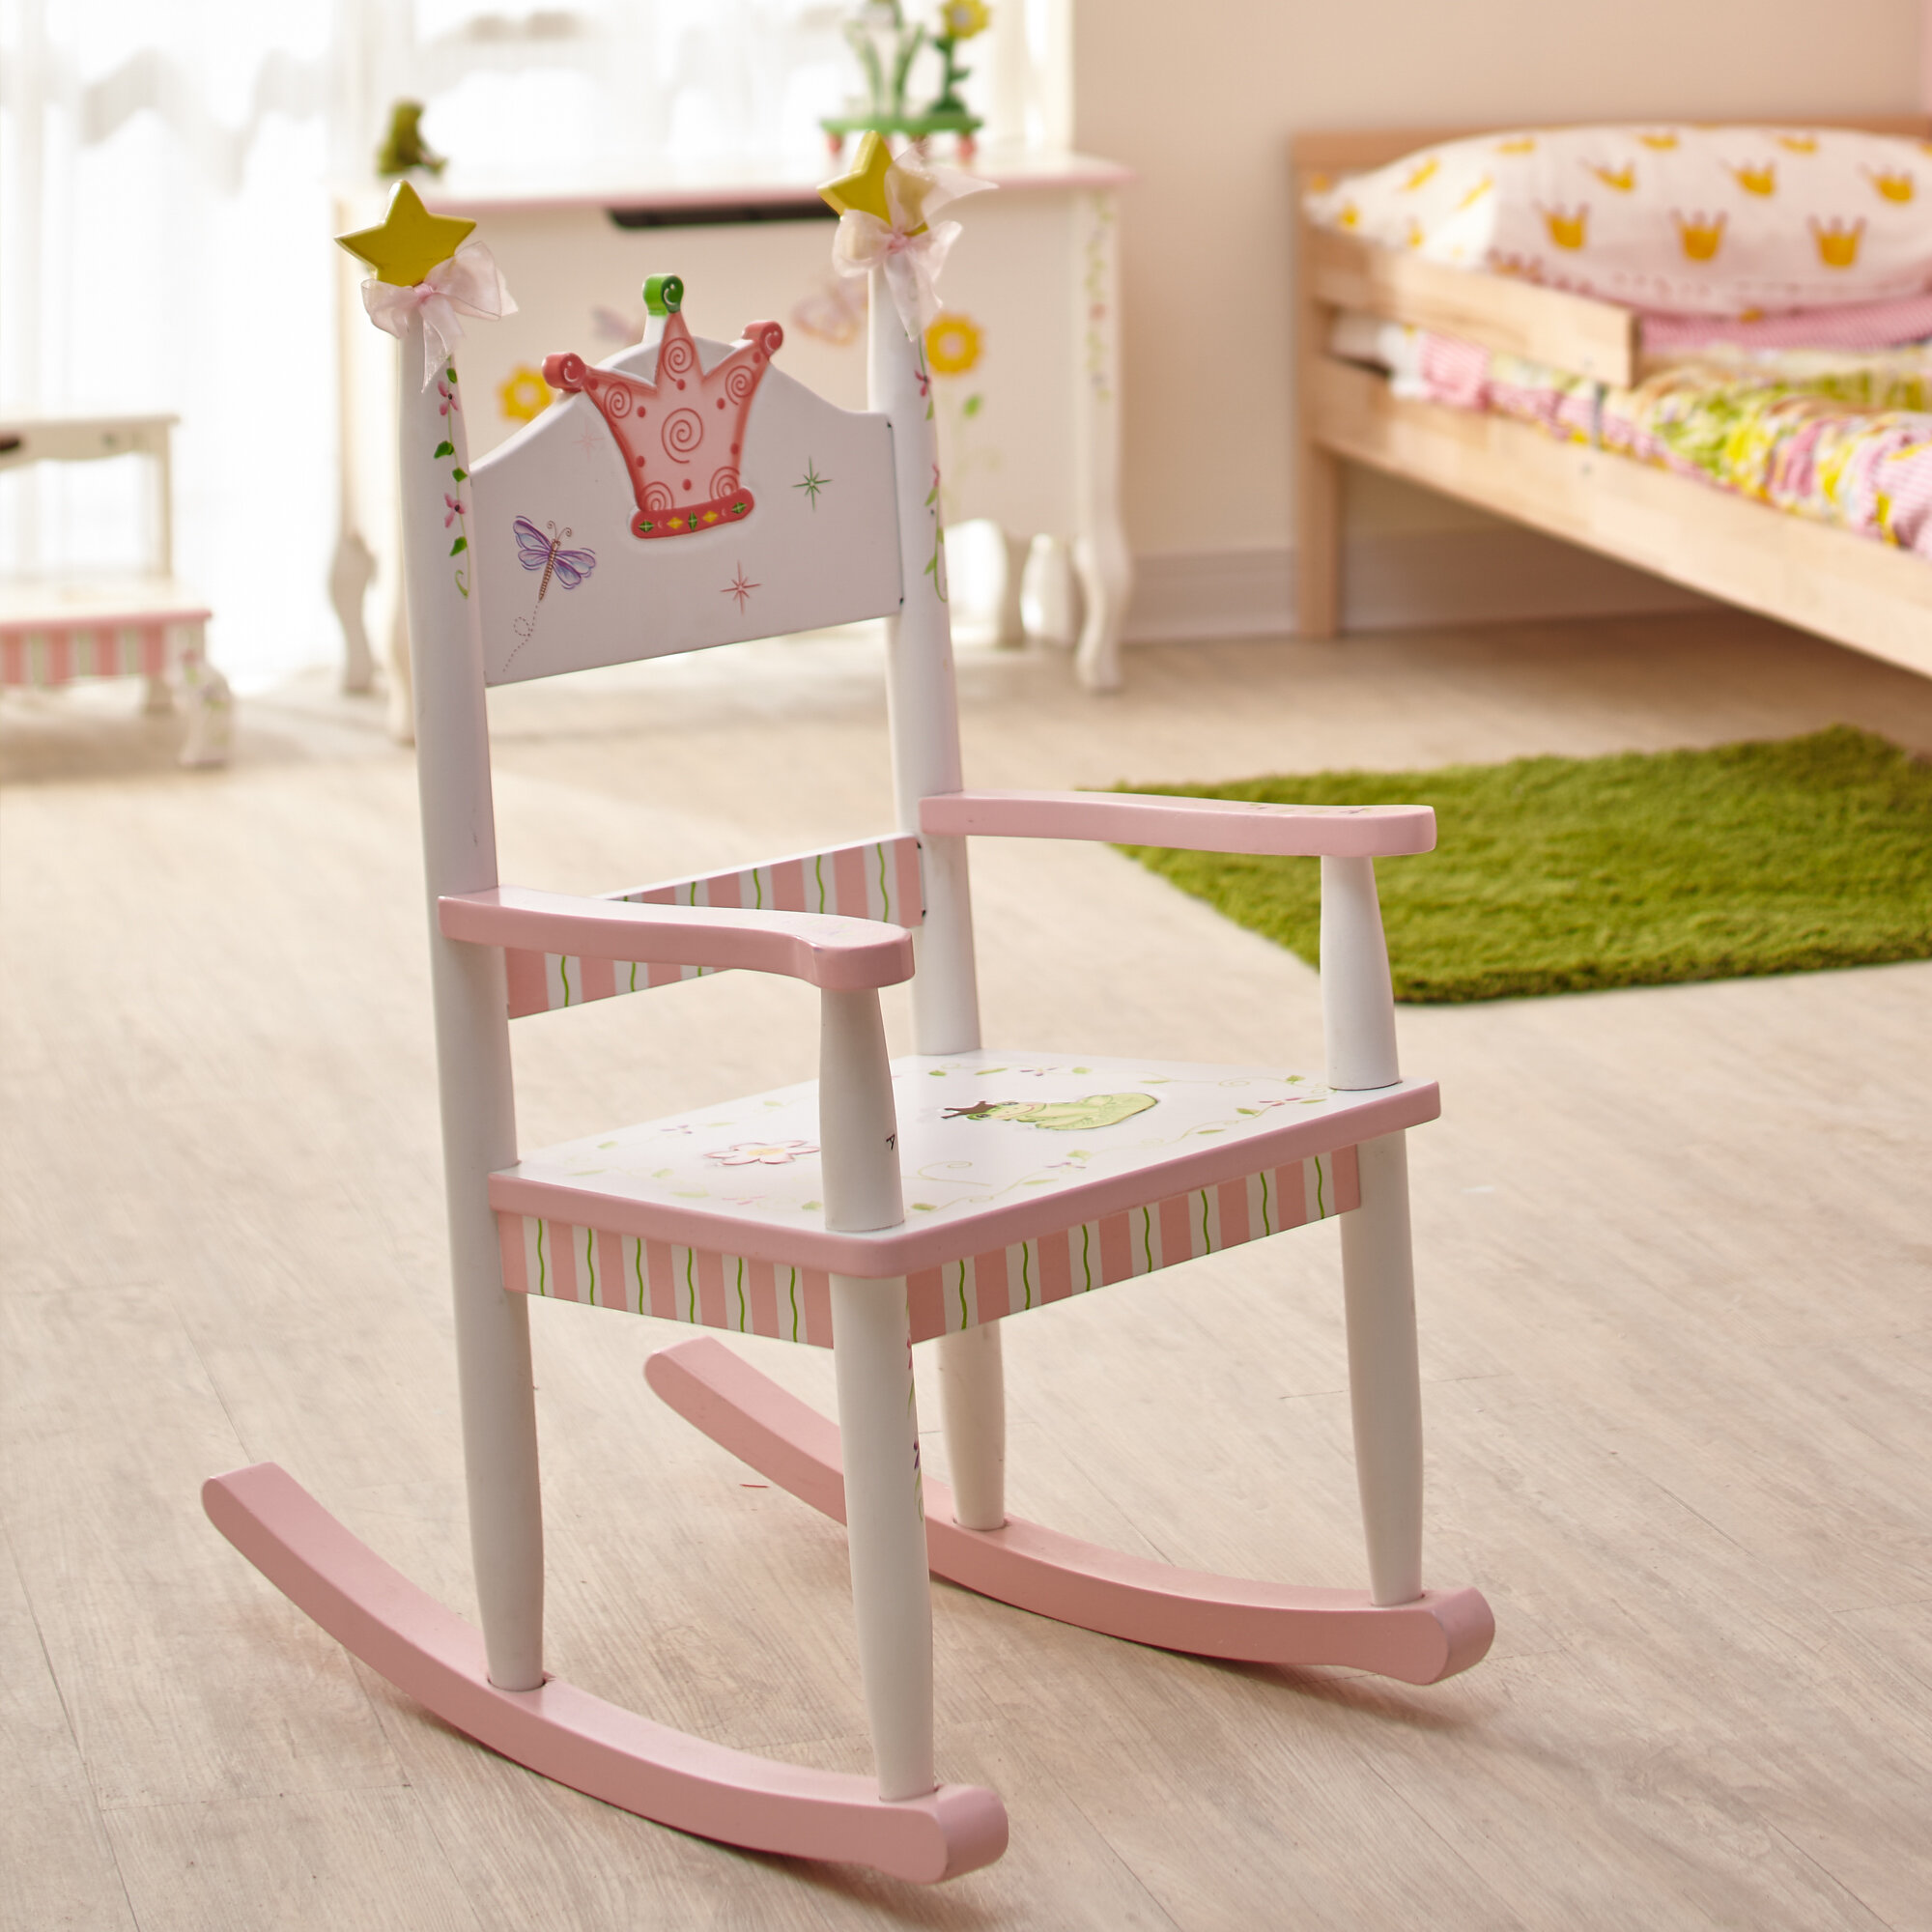 wayfair baby fantasy ca kids fields chair rocking reviews alphabet pdp